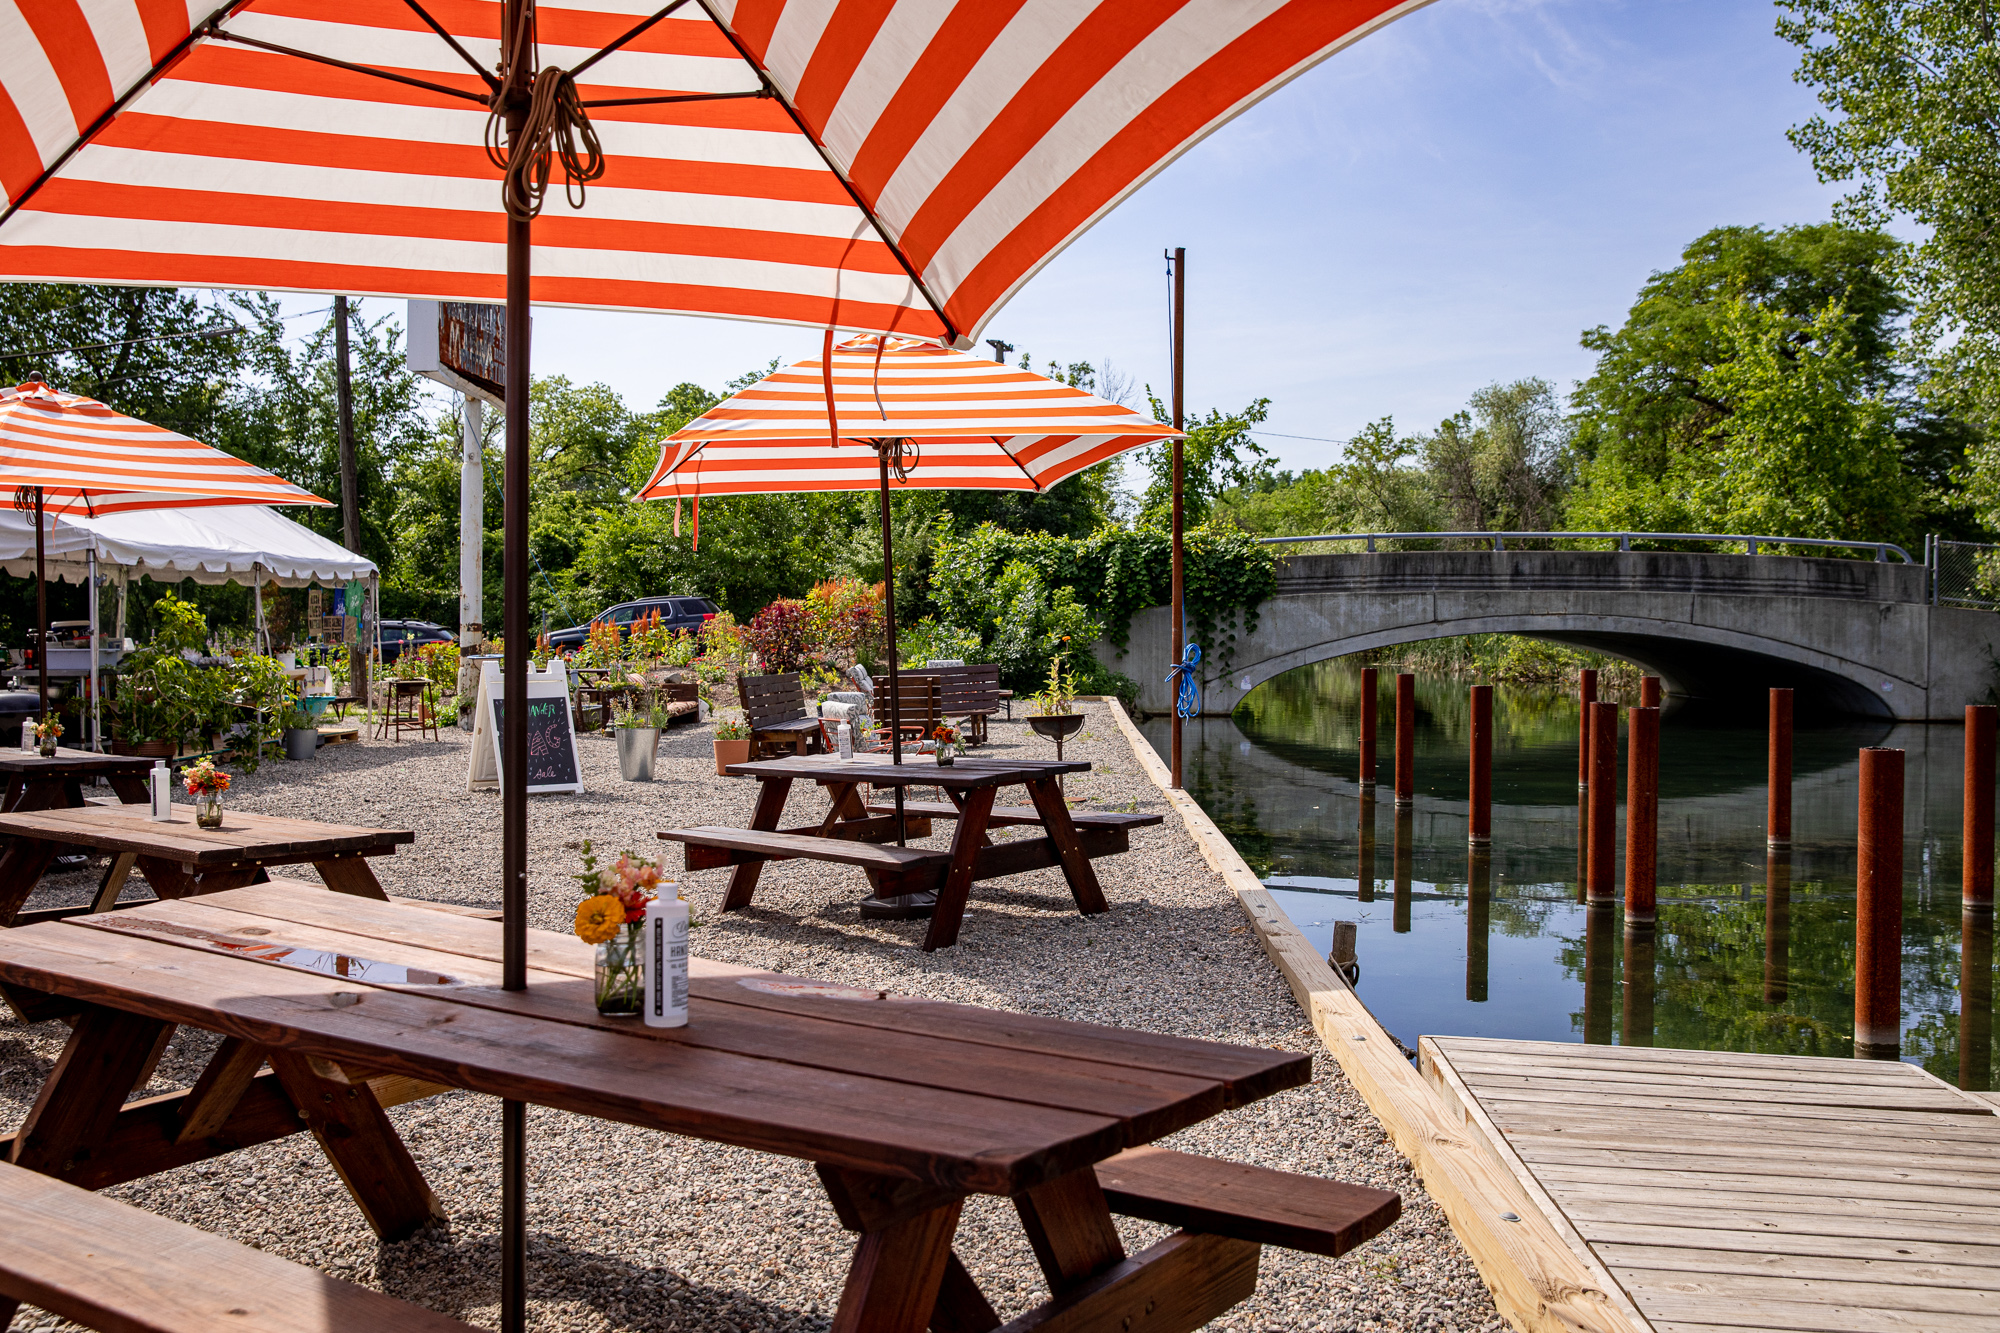 Orange and white striped umbrellas cover wooden picnic tables with orange flowers in vases and bottles of hand sanitizer next to a dock.